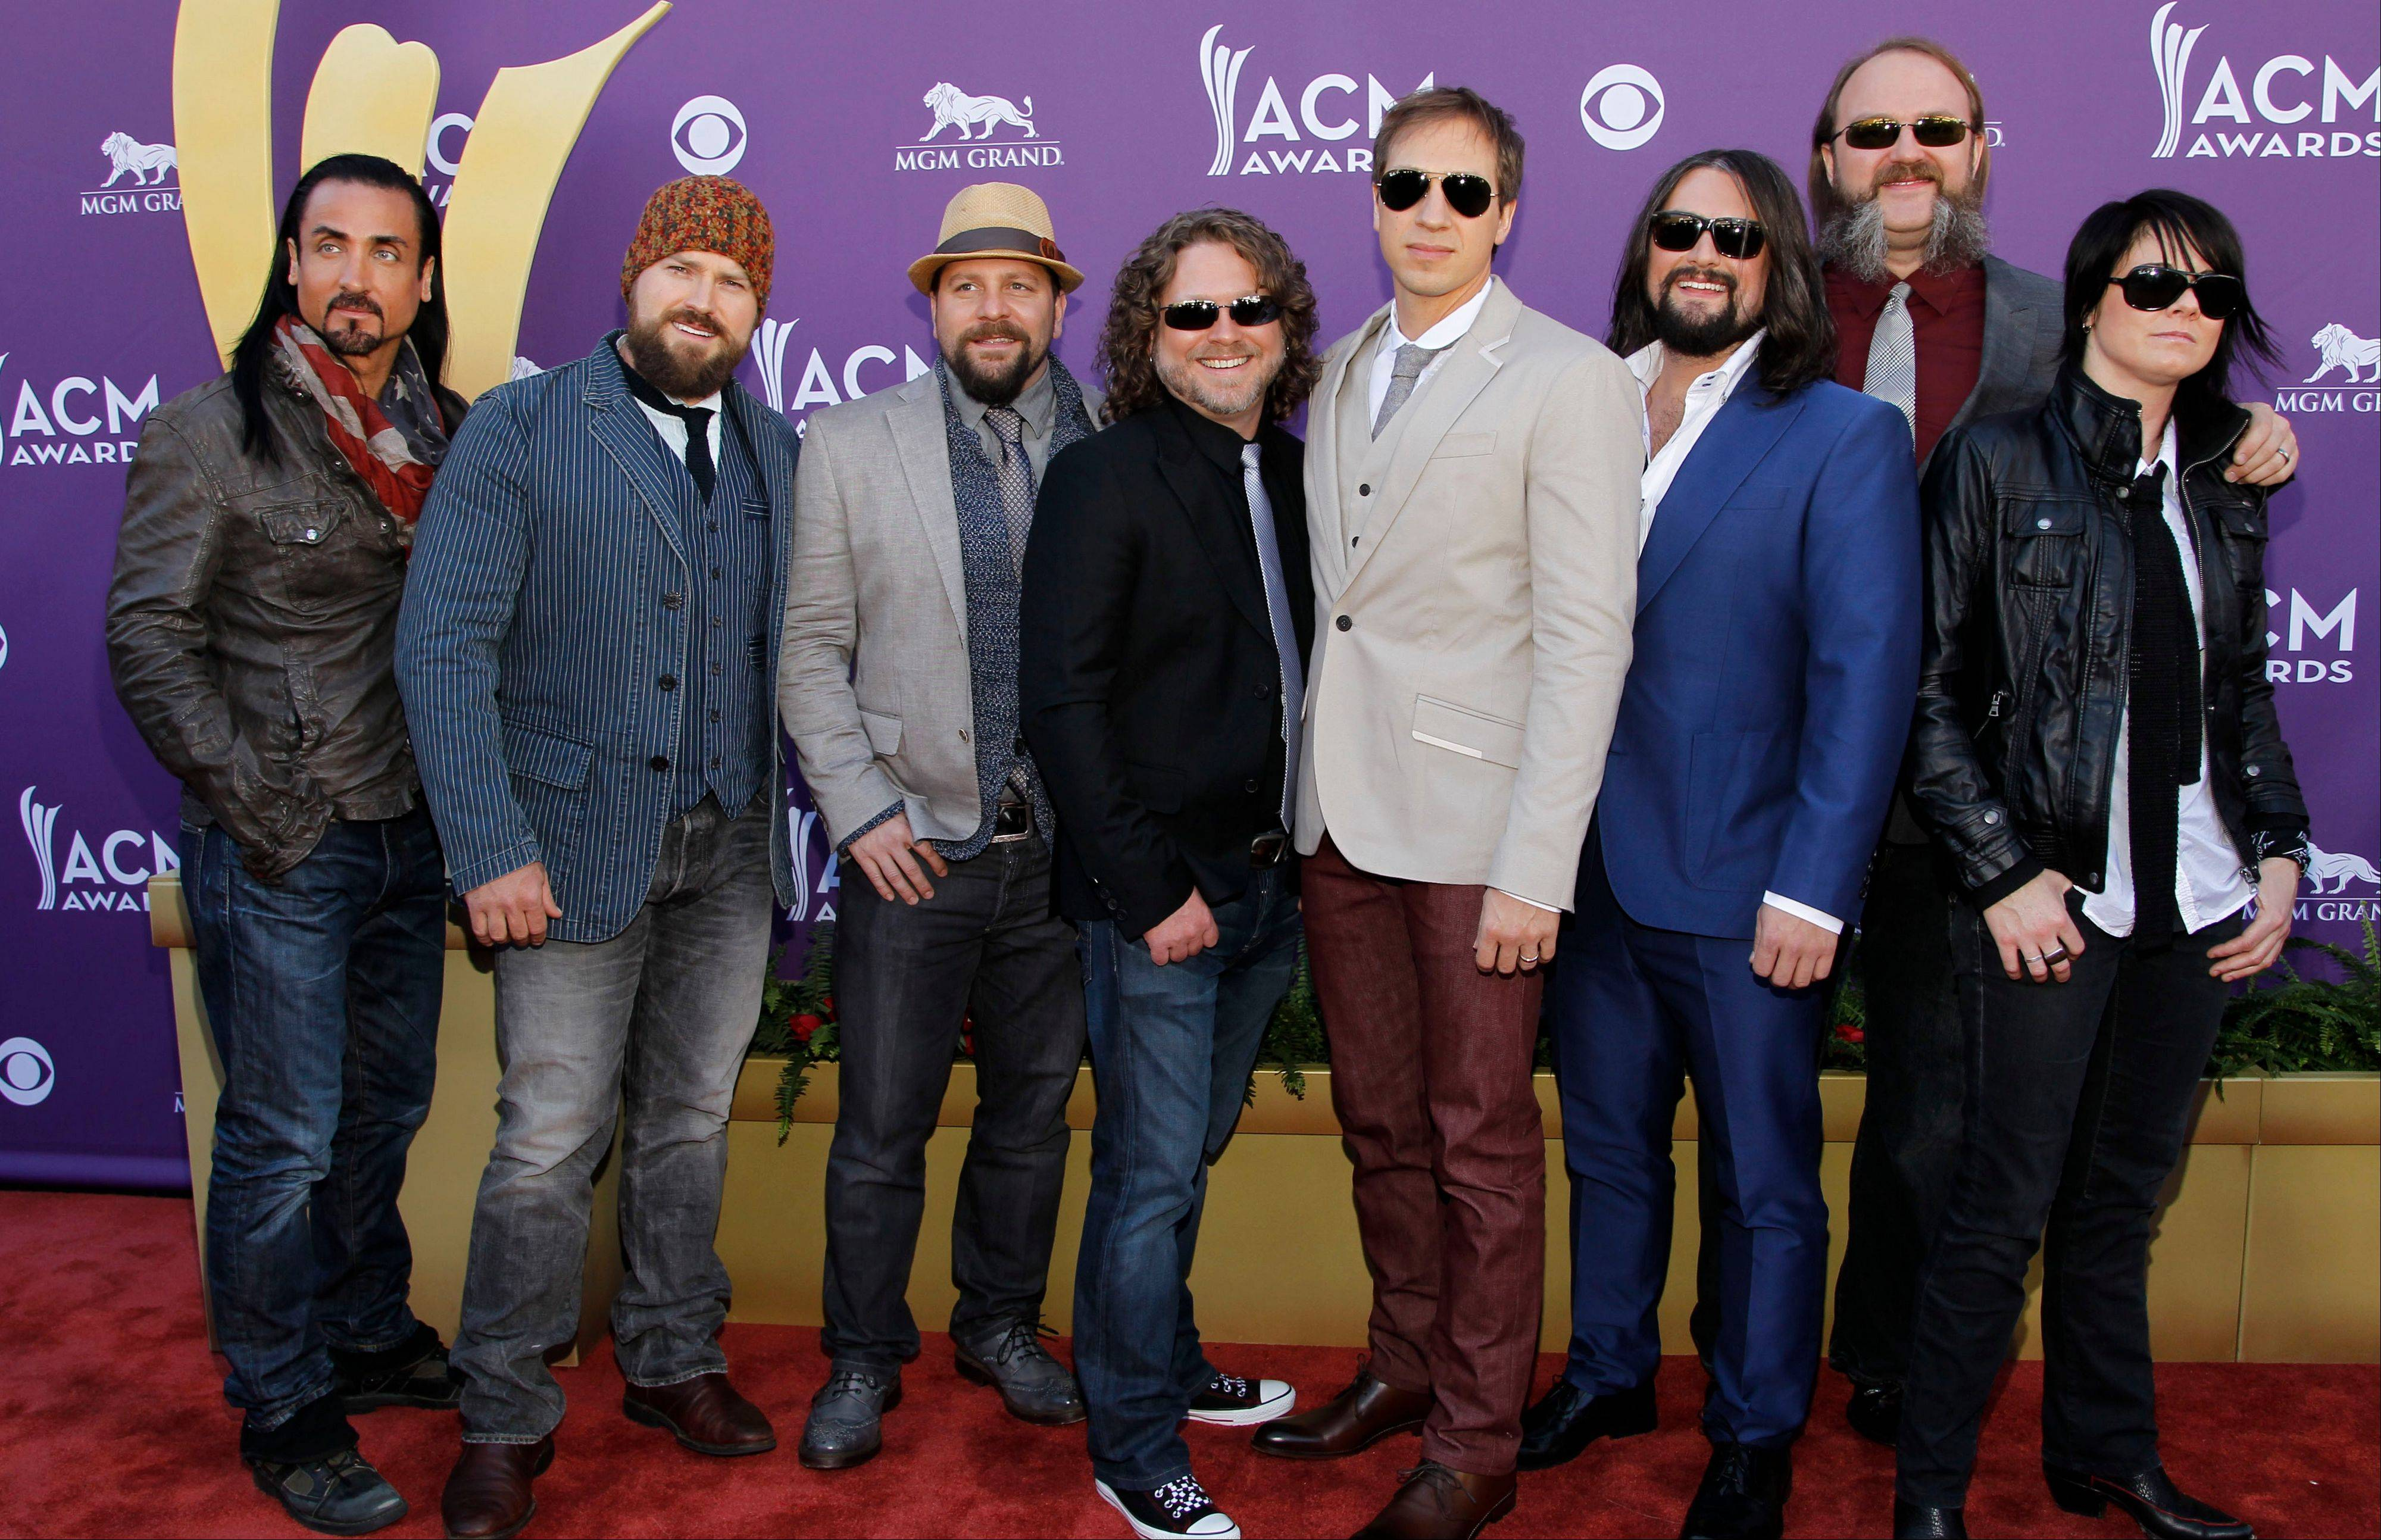 Sonia Leigh, right, and musical group Zac Brown Band arrives at the 47th Annual Academy of Country Music Awards on Sunday, April 1, 2012 in Las Vegas.